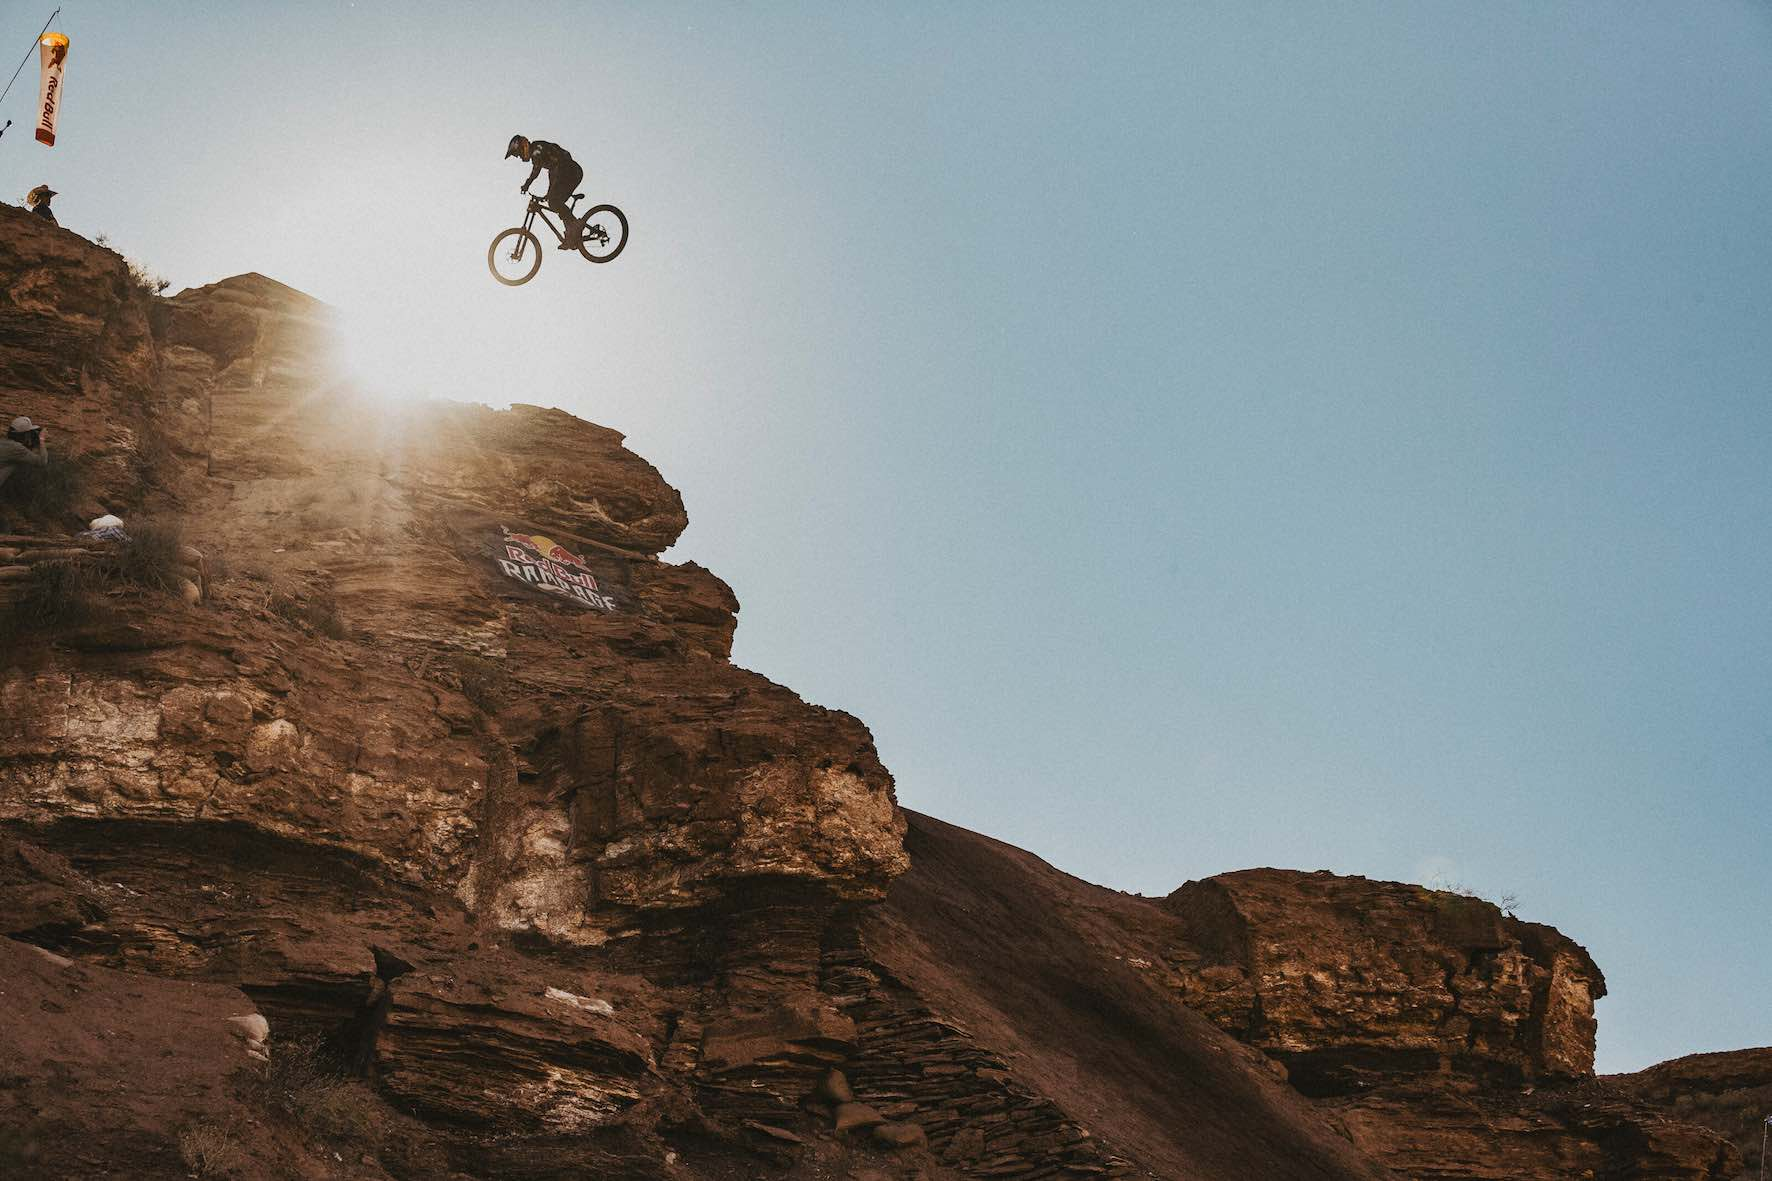 Carson Storch comptes at Red Bull Rampage 2019